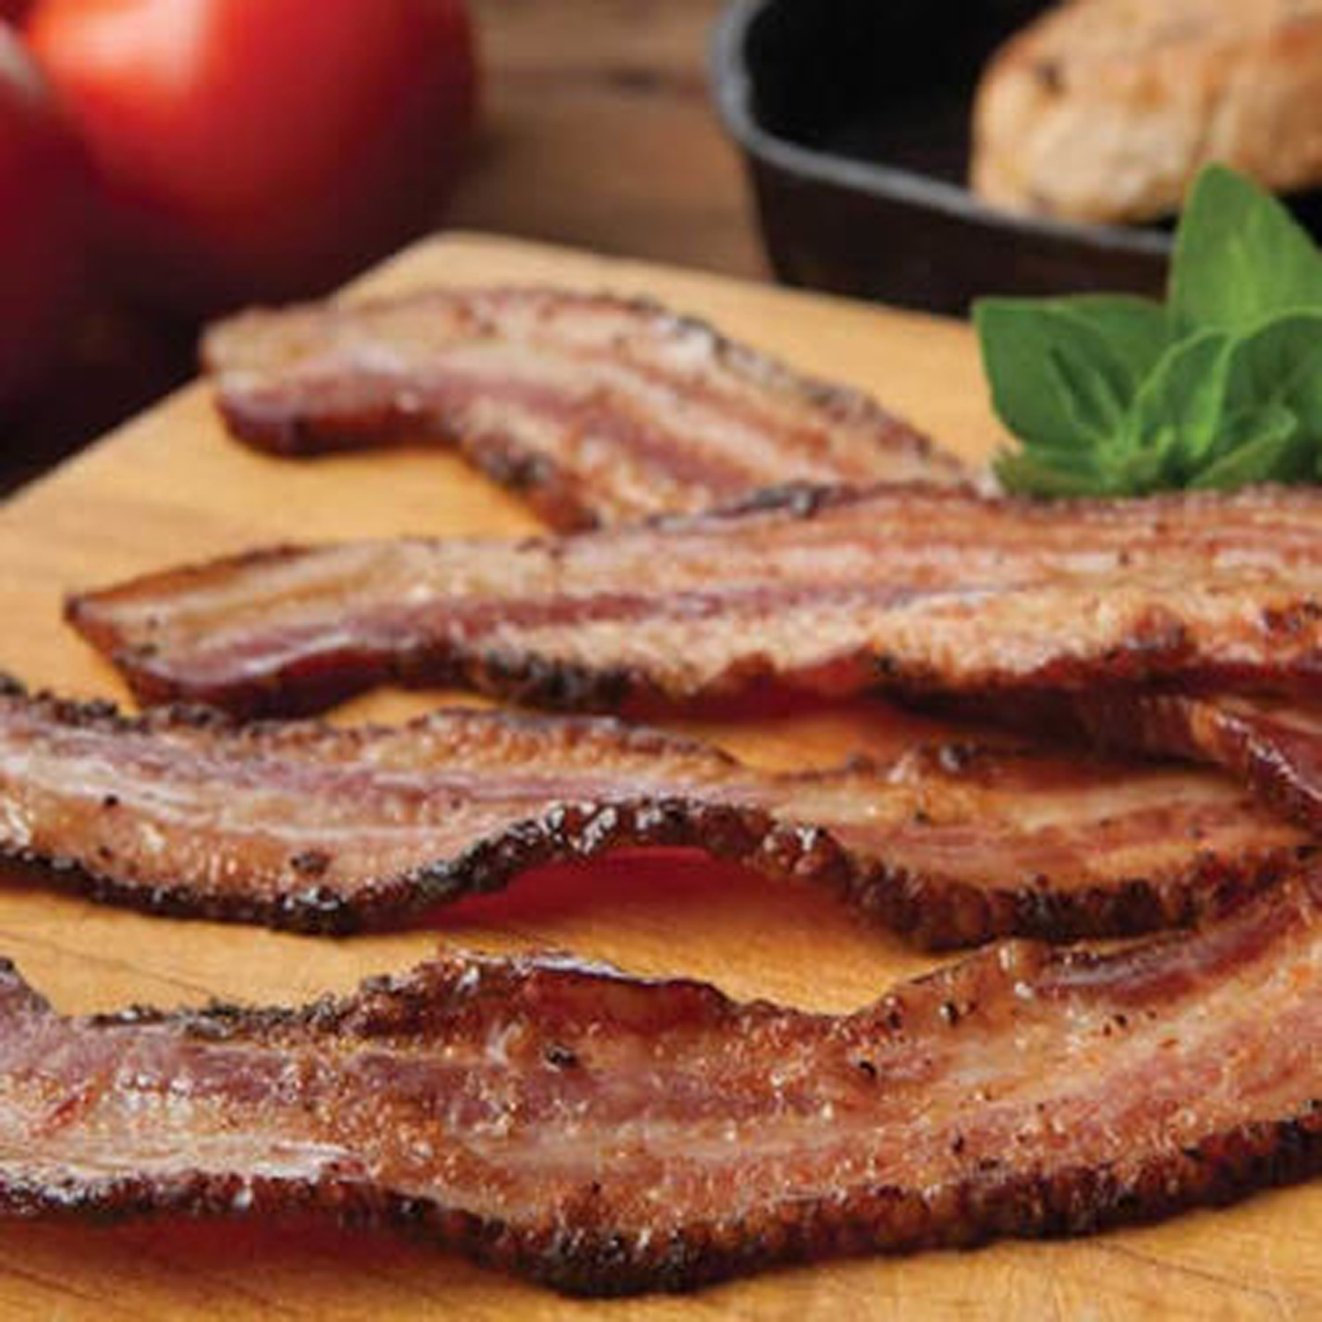 Fully Cooked Bacon, Ready to Eat, 80 Slices Per Pack / Case, 10 Year Shelf Life, Superior to Canned, Real Thick Cut, 2+ Pounds, No Refrigeration Needed, Grocery, Long Term Storage, Camp, Hunt, Lunch